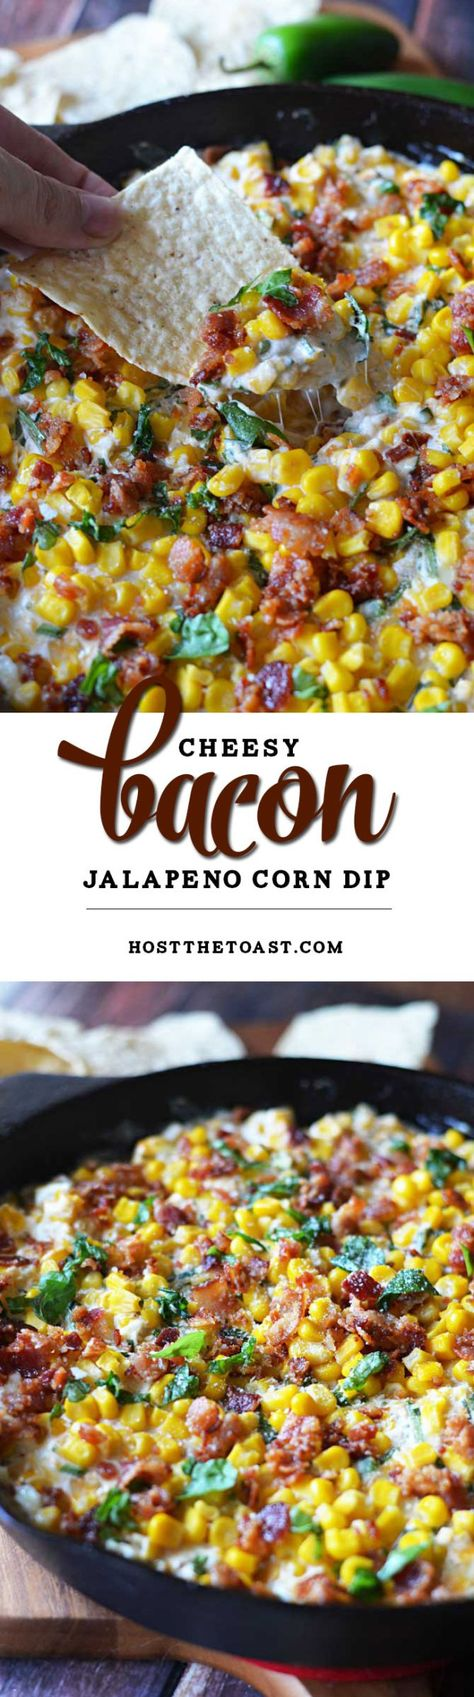 Cheesy Bacon Jalapeno Corn Dip. The sprinkle of basil seems weird but it's SO AMAZING. This is a new football Sunday must-have!